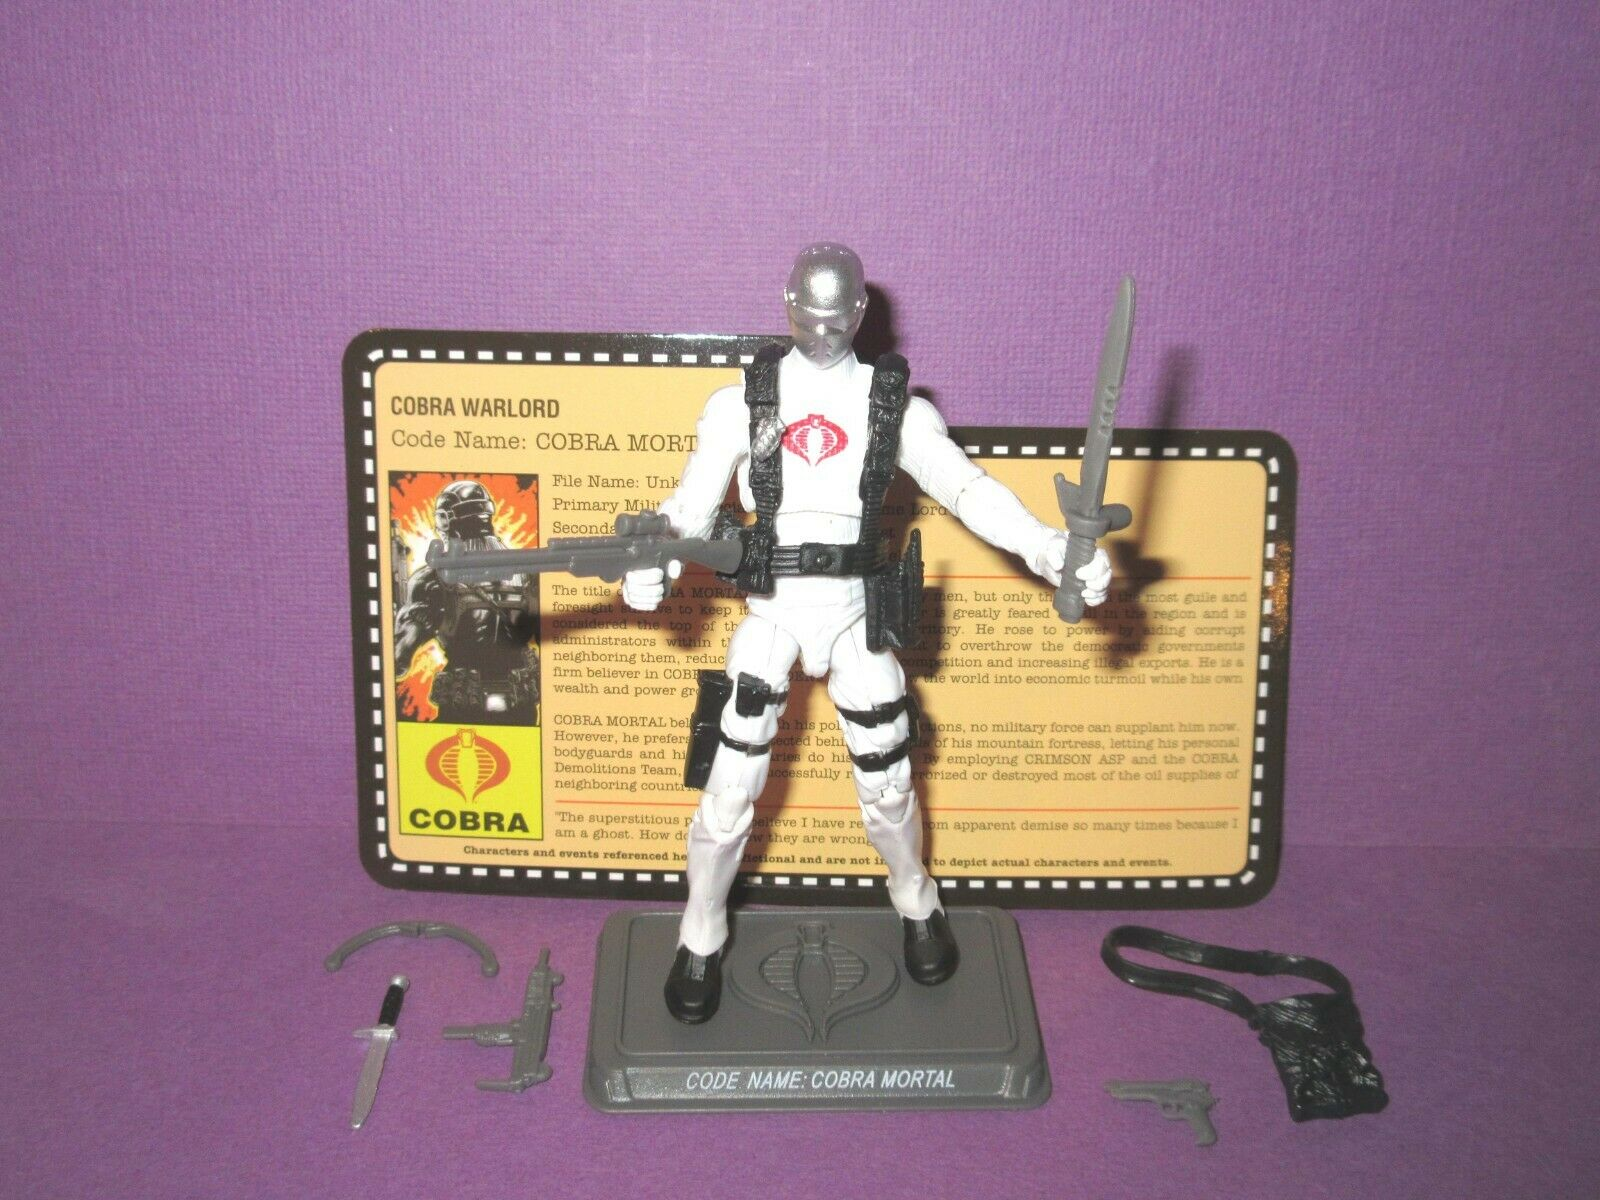 2013 Cobra Mortal - GIJOE Figure 100% Complete - Night Force Convention